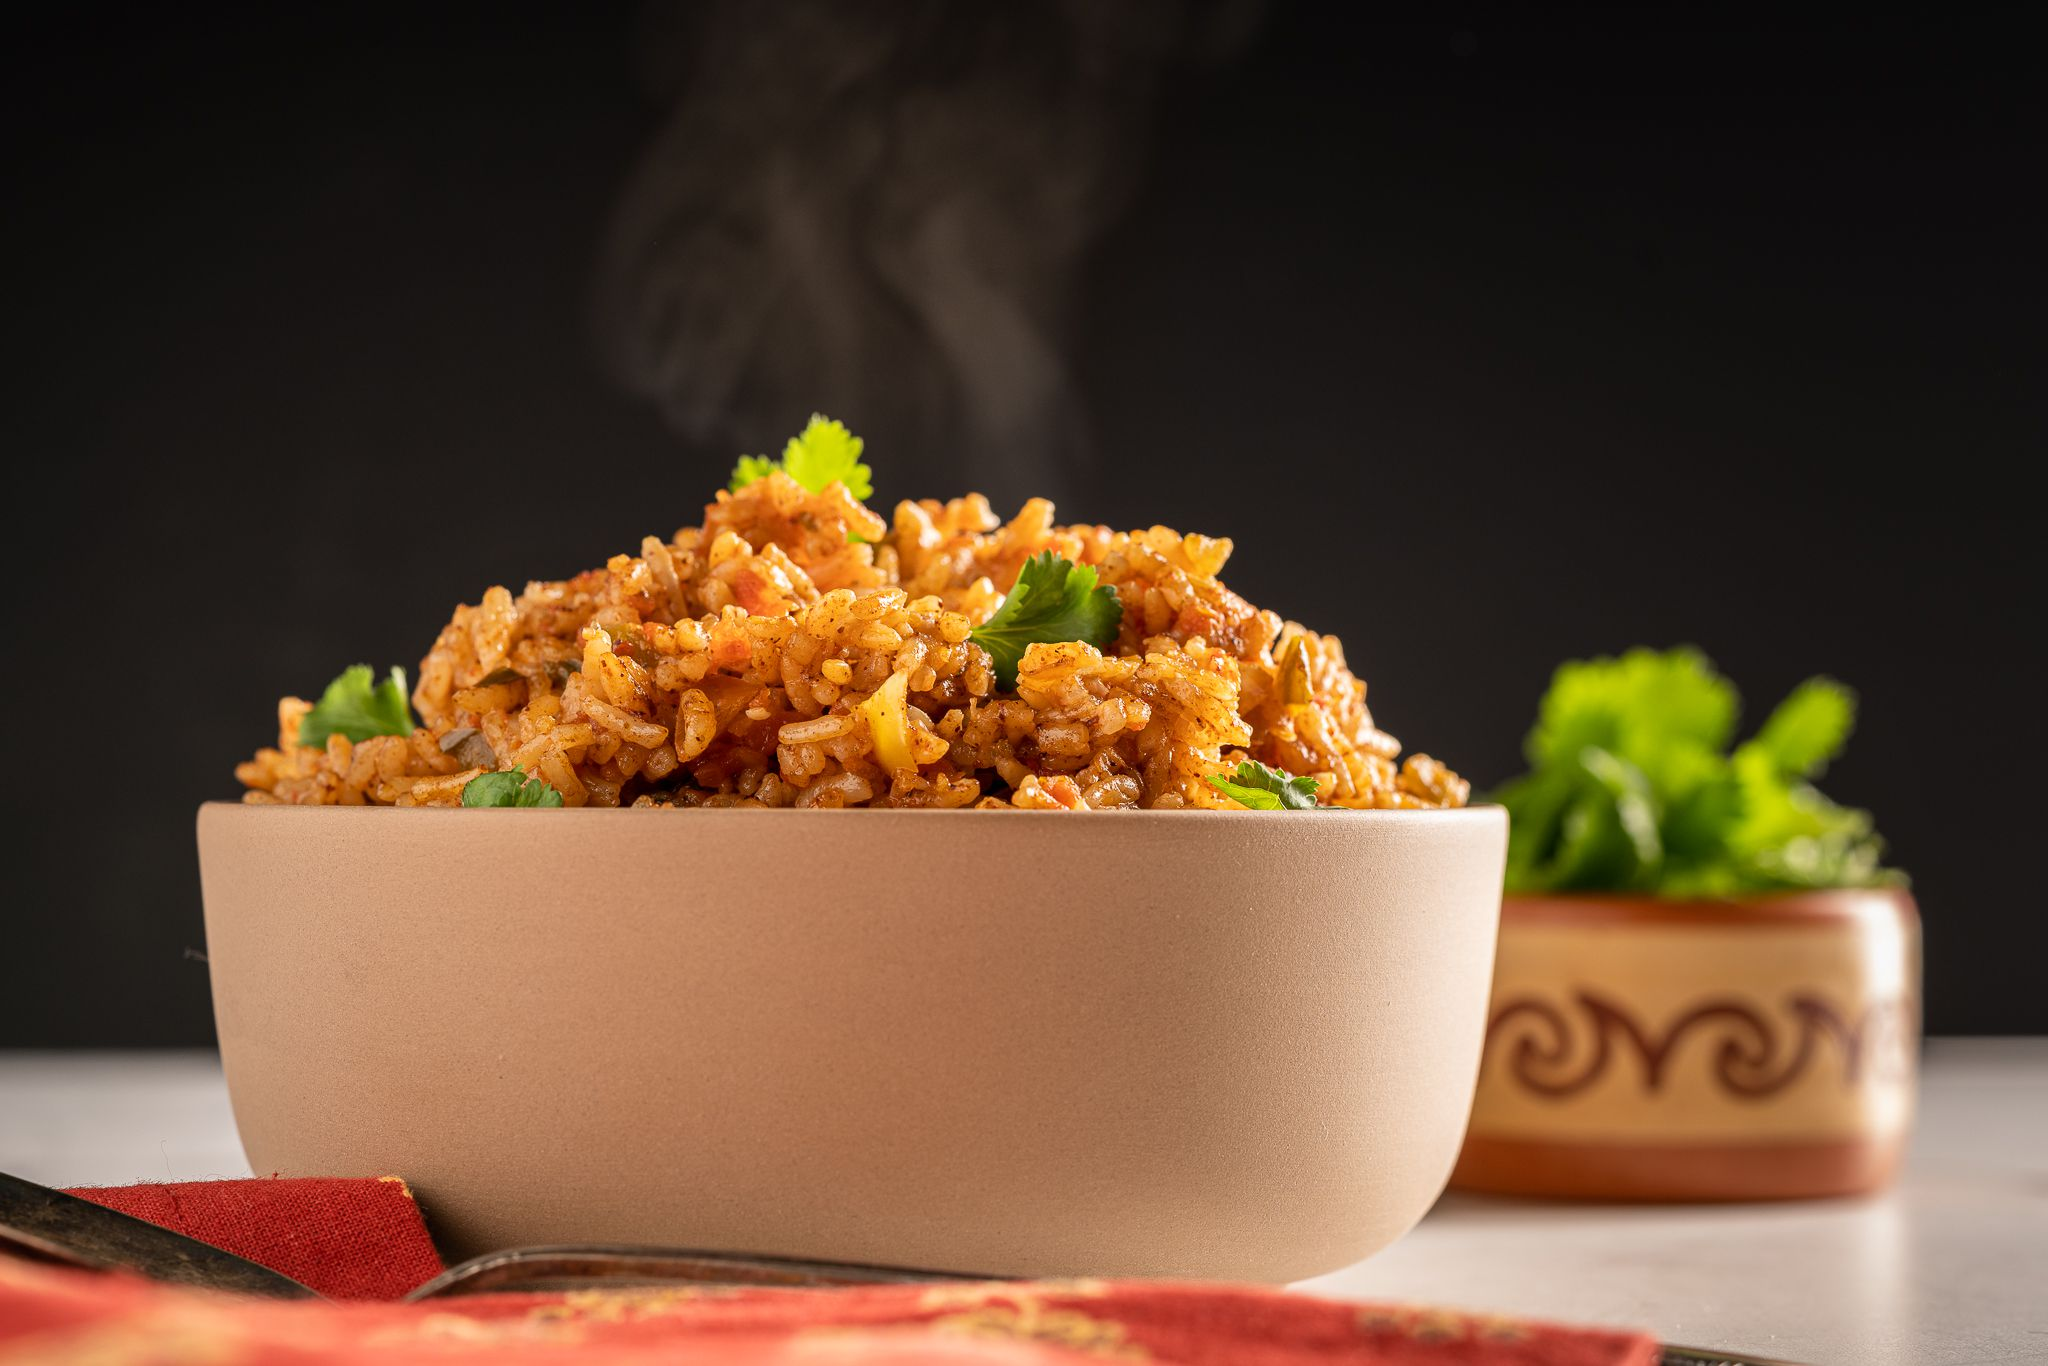 The Instant Pot Makes Spanish Rice Super Easy